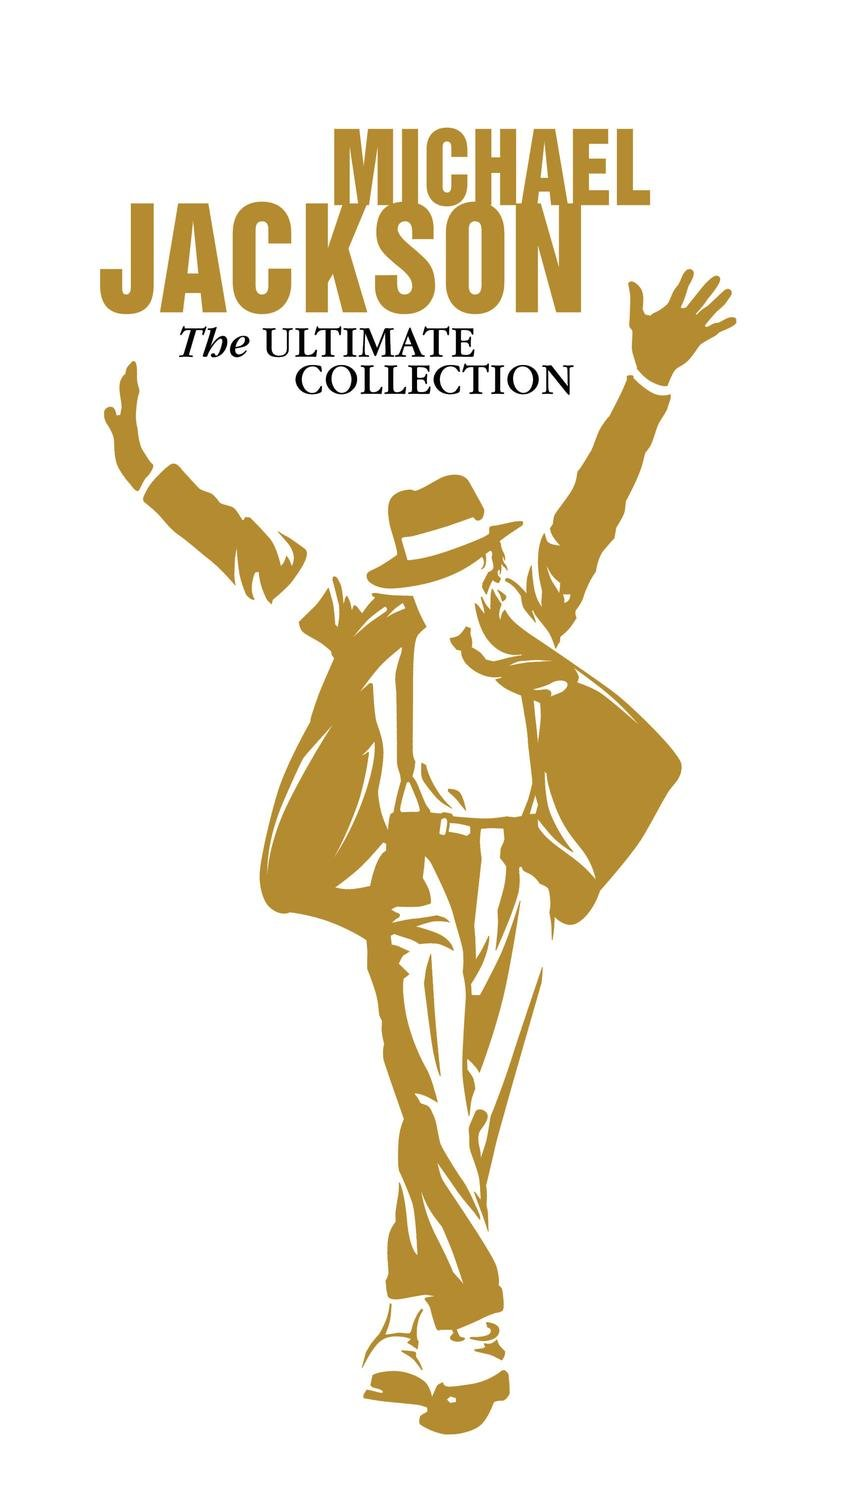 Michael Jackson - The Ultimate Collection - Amazon.com Music